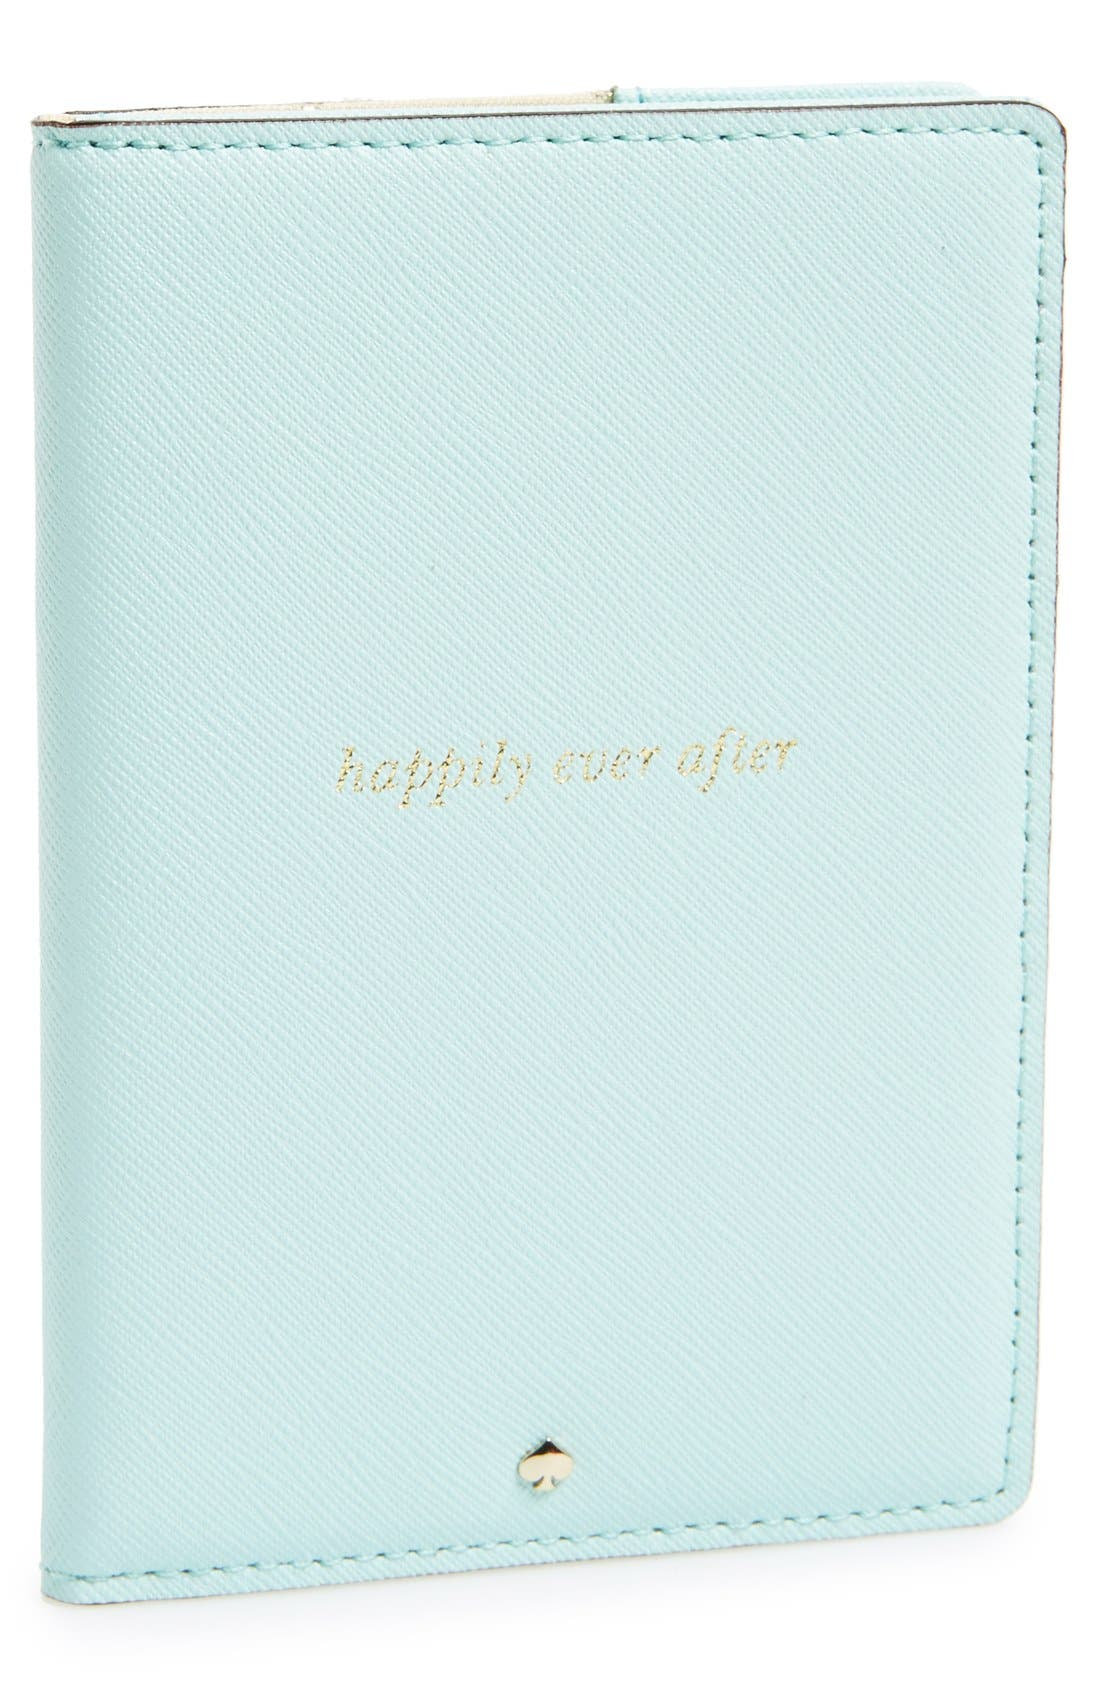 Main Image - kate spade new york 'wedding belles - happily ever after' passport holder